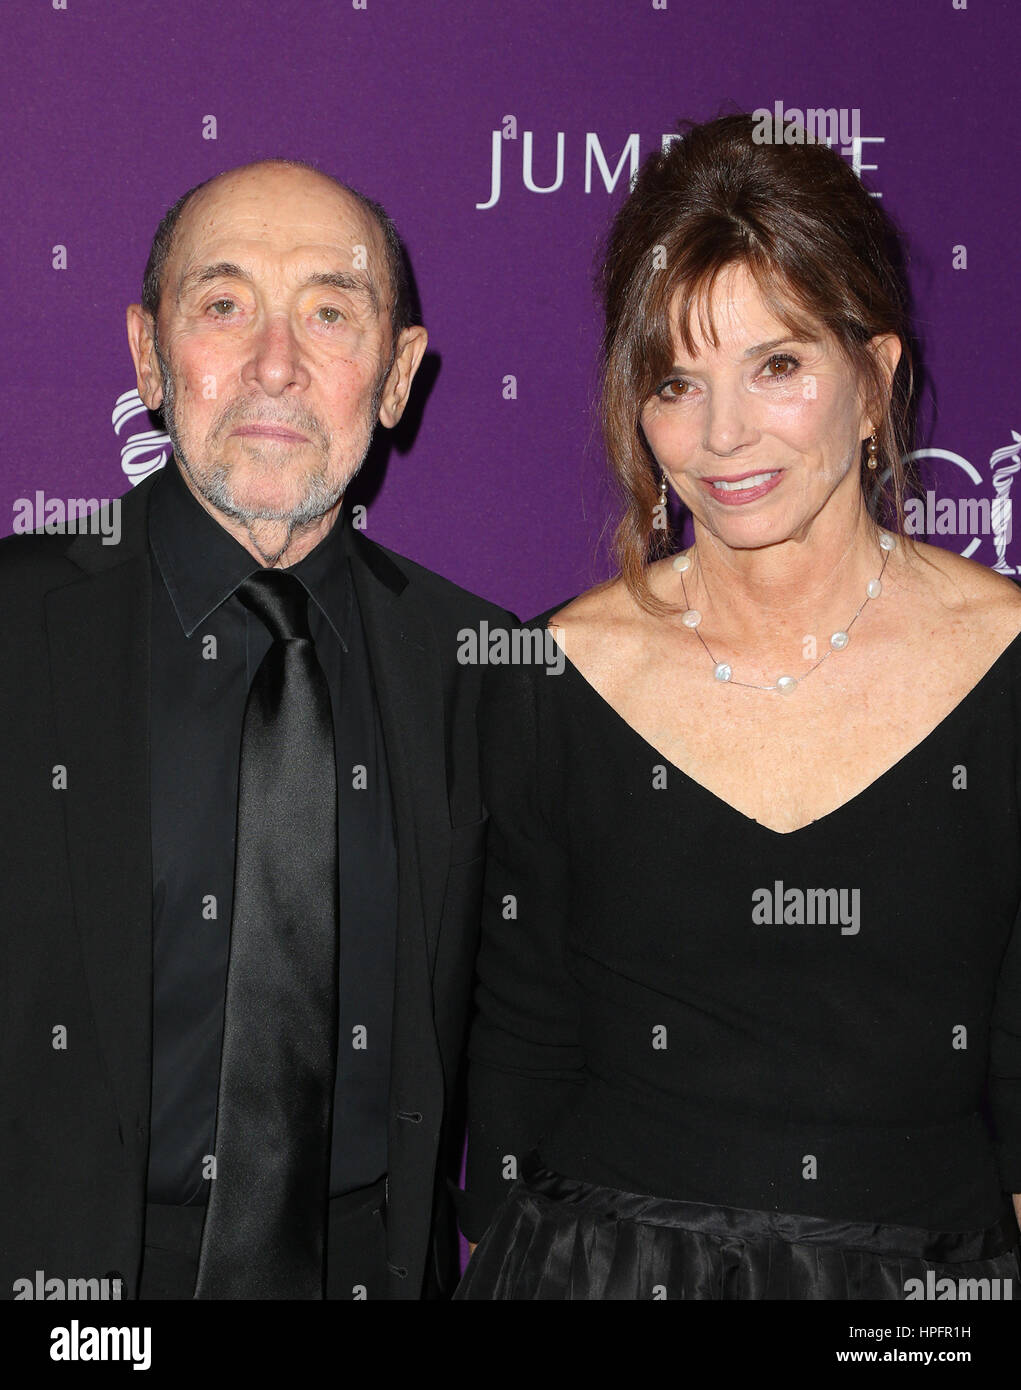 Beverly Hills, CA. 21st Feb, 2017. Albert Wolsky, Susan Hall, At 19th CDGA (Costume Designers Guild Awards), At Stock Photo